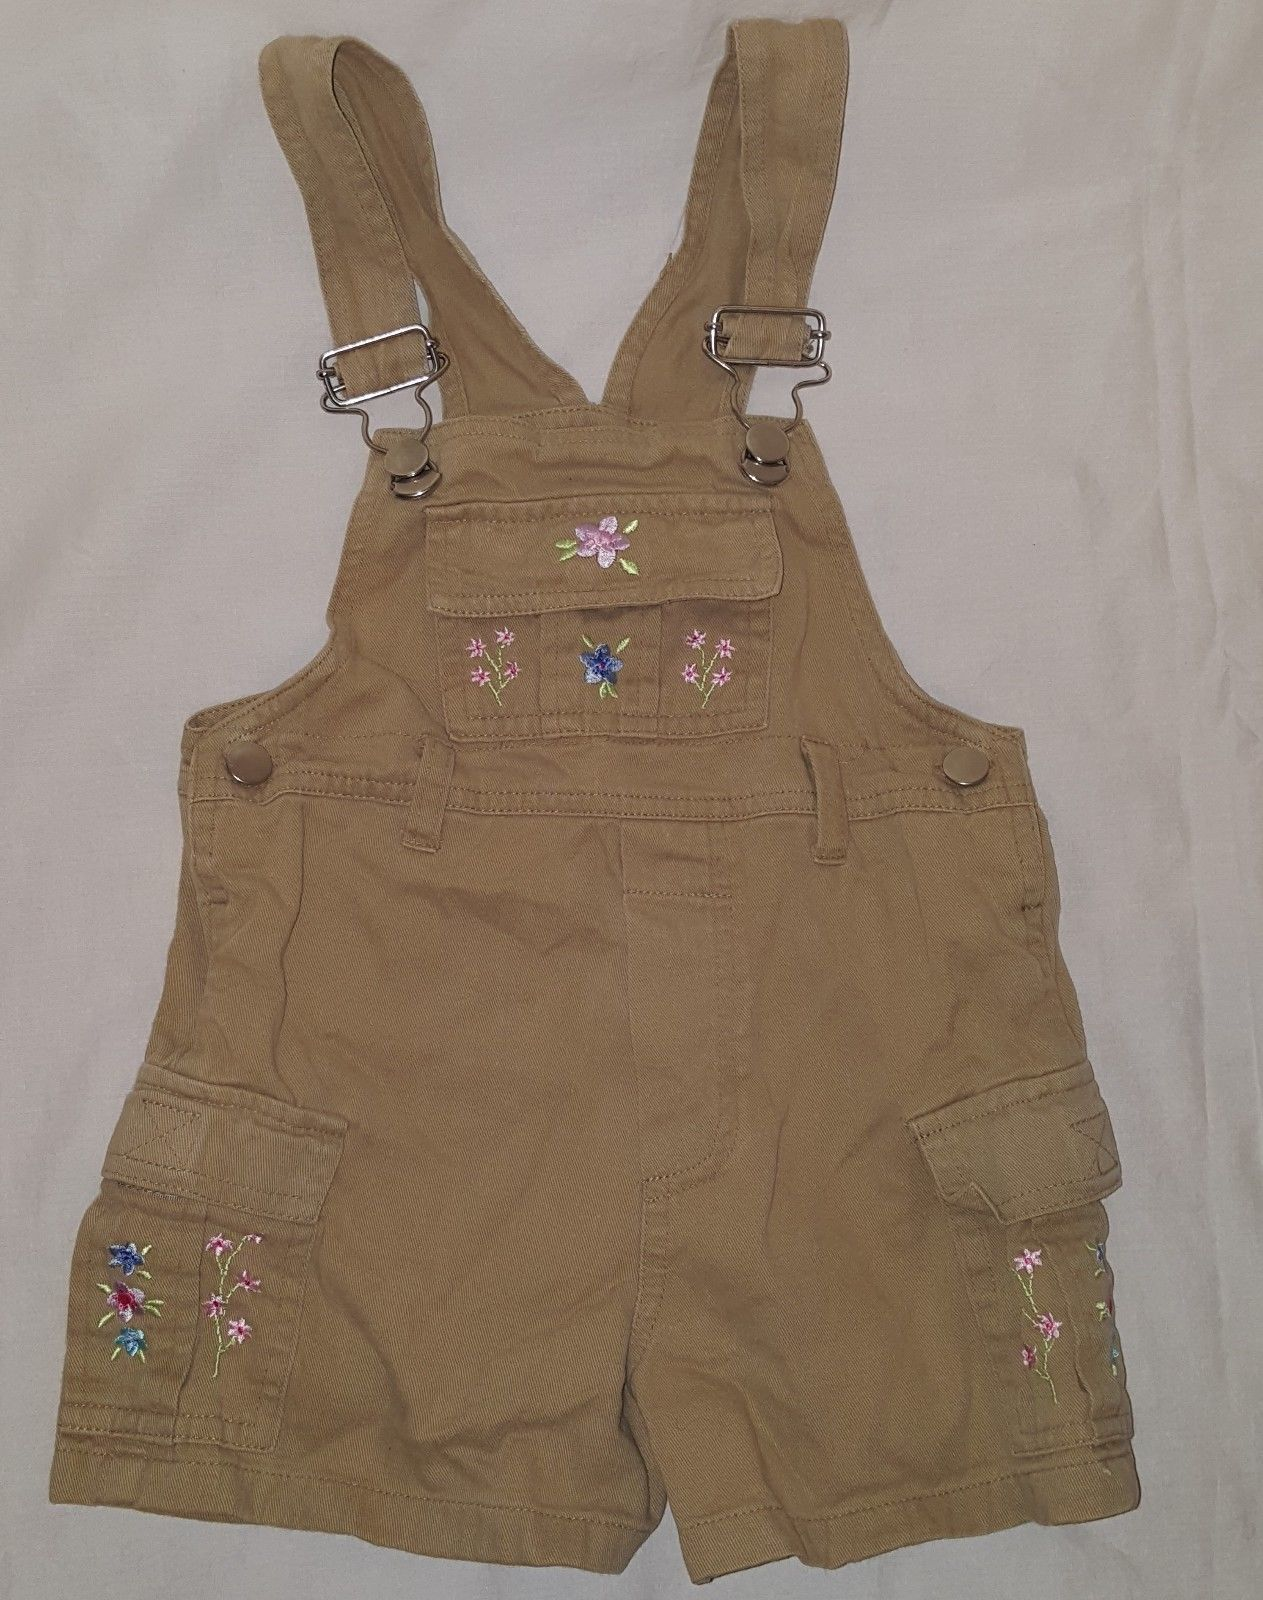 Overalls Shorts Flowers  Size 2T 24 Months One Piece Girls Beige Pink Kiks